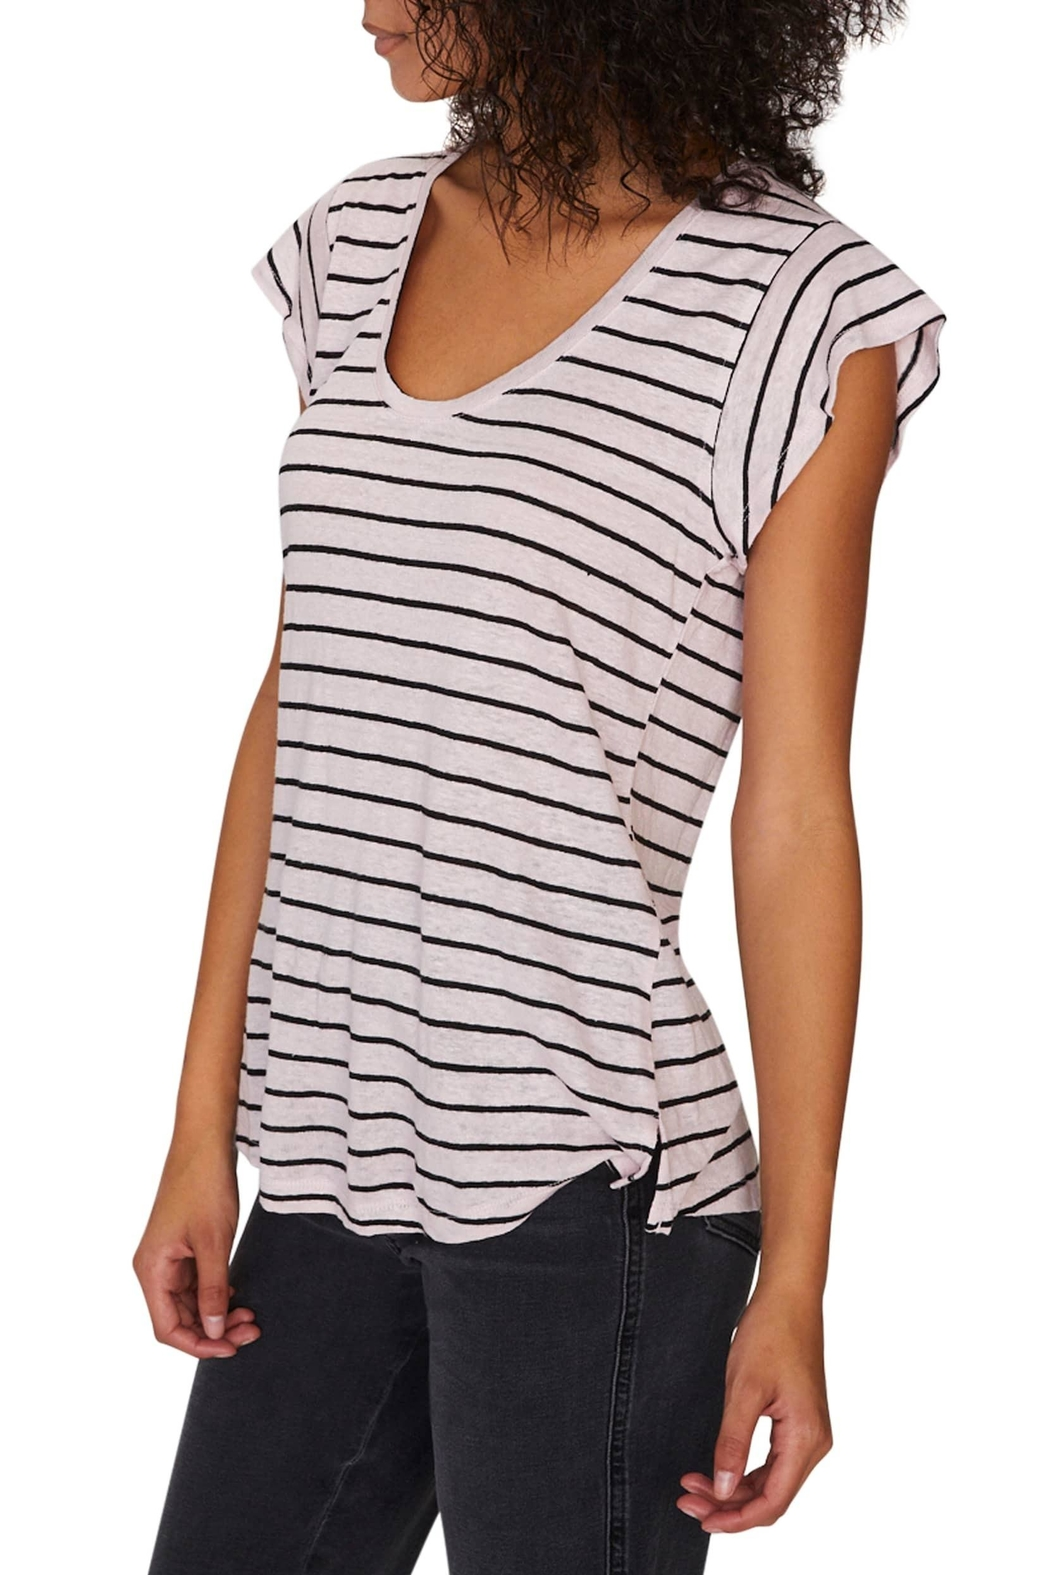 Sanctuary Ruby Scoop Tee - Side Cropped Image